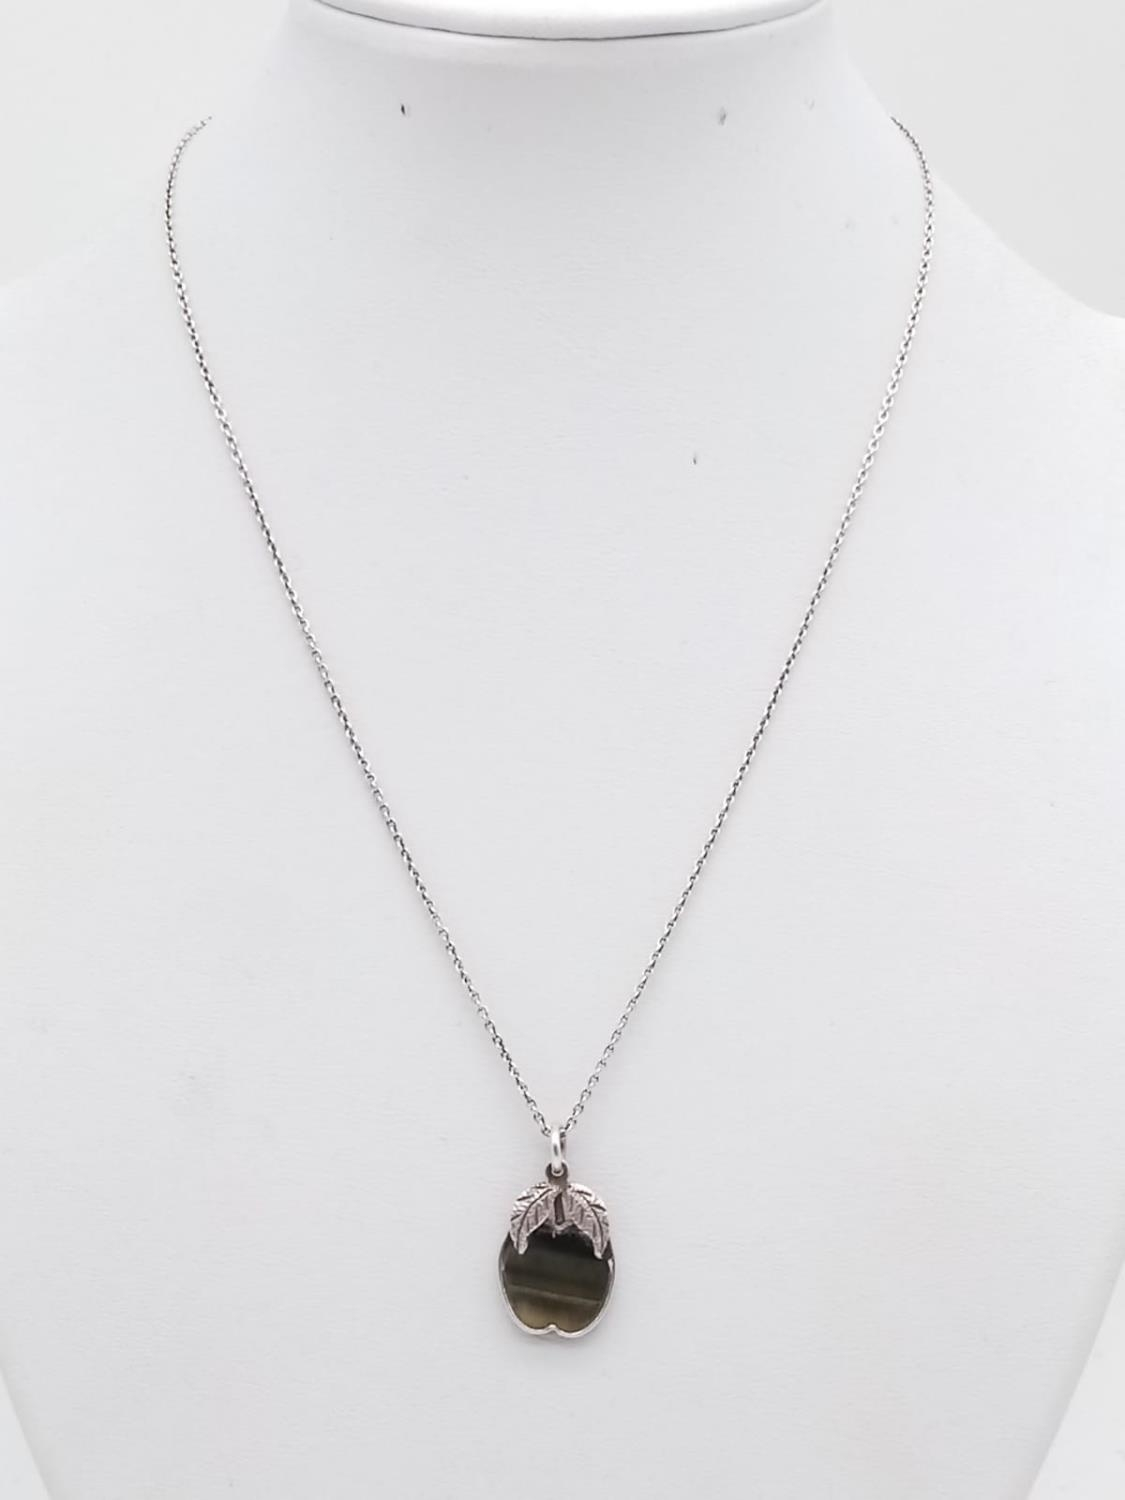 Vintage sterling silver apple pendant necklace in box - Image 3 of 7